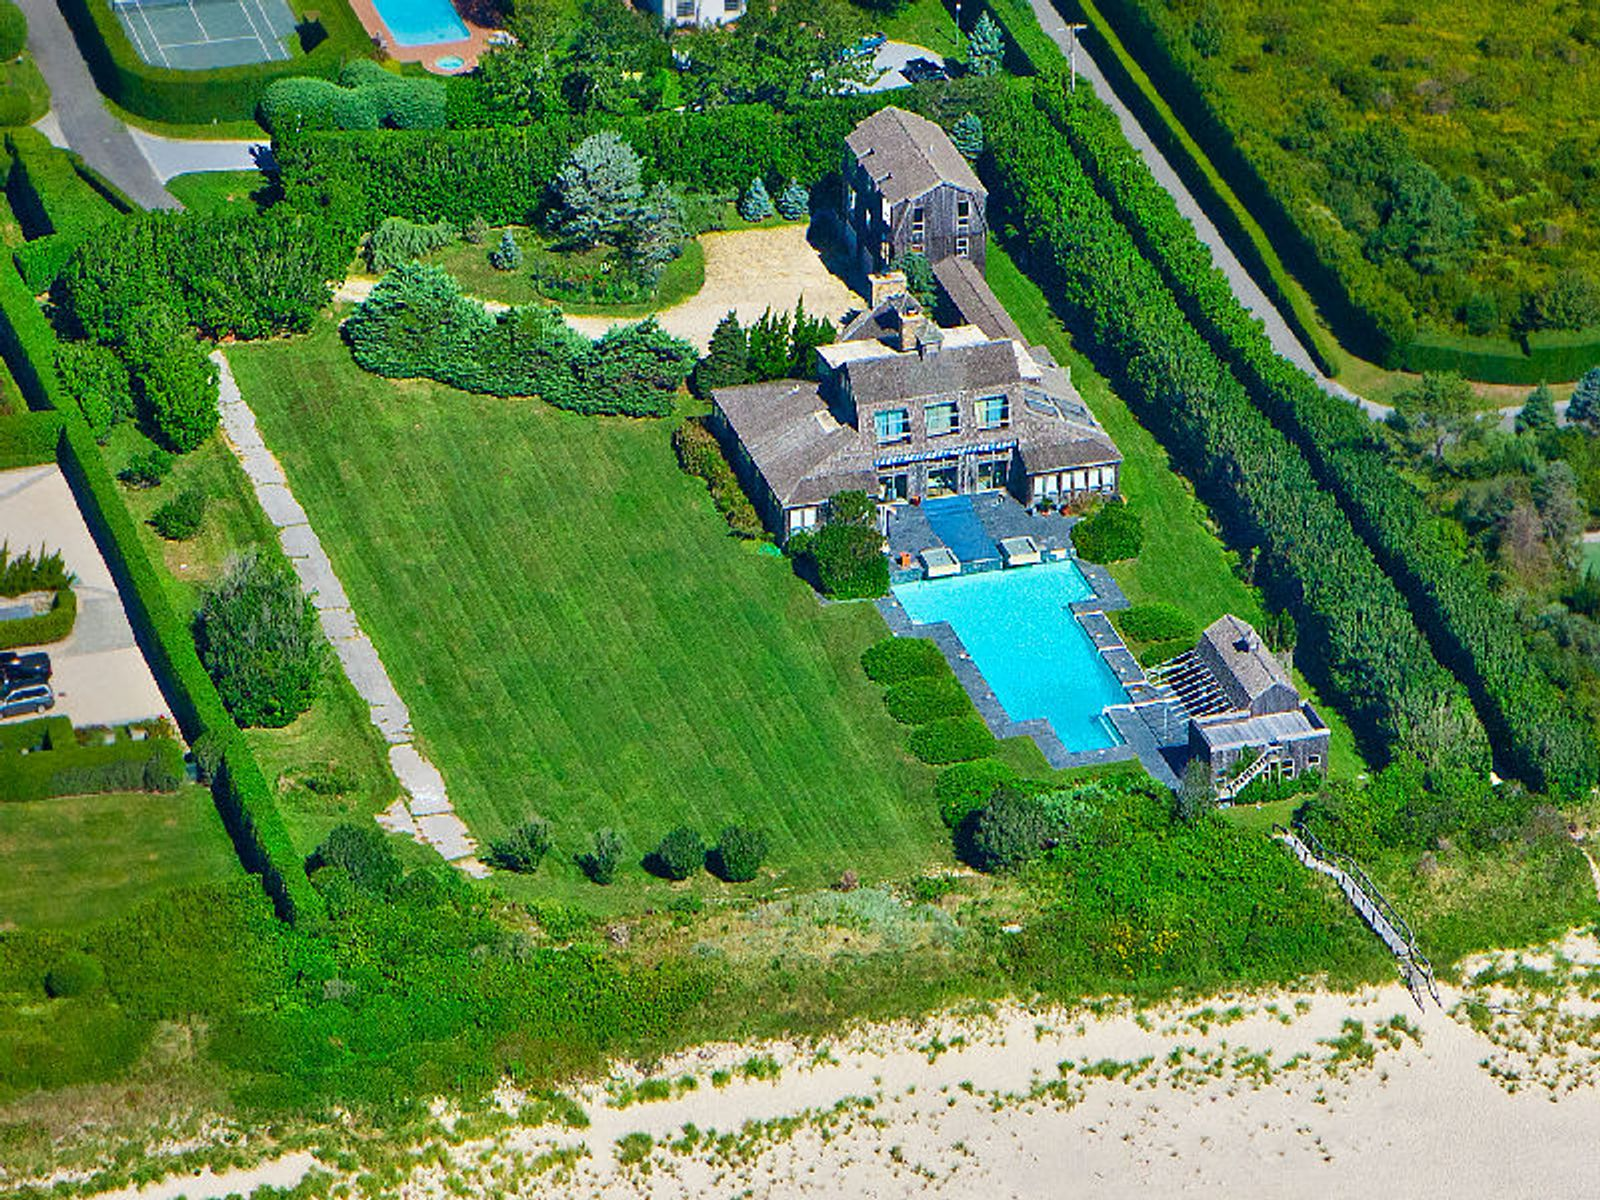 Southampton Oceanfront Estate, Southampton NY Single Family Home - Hamptons Real Estate